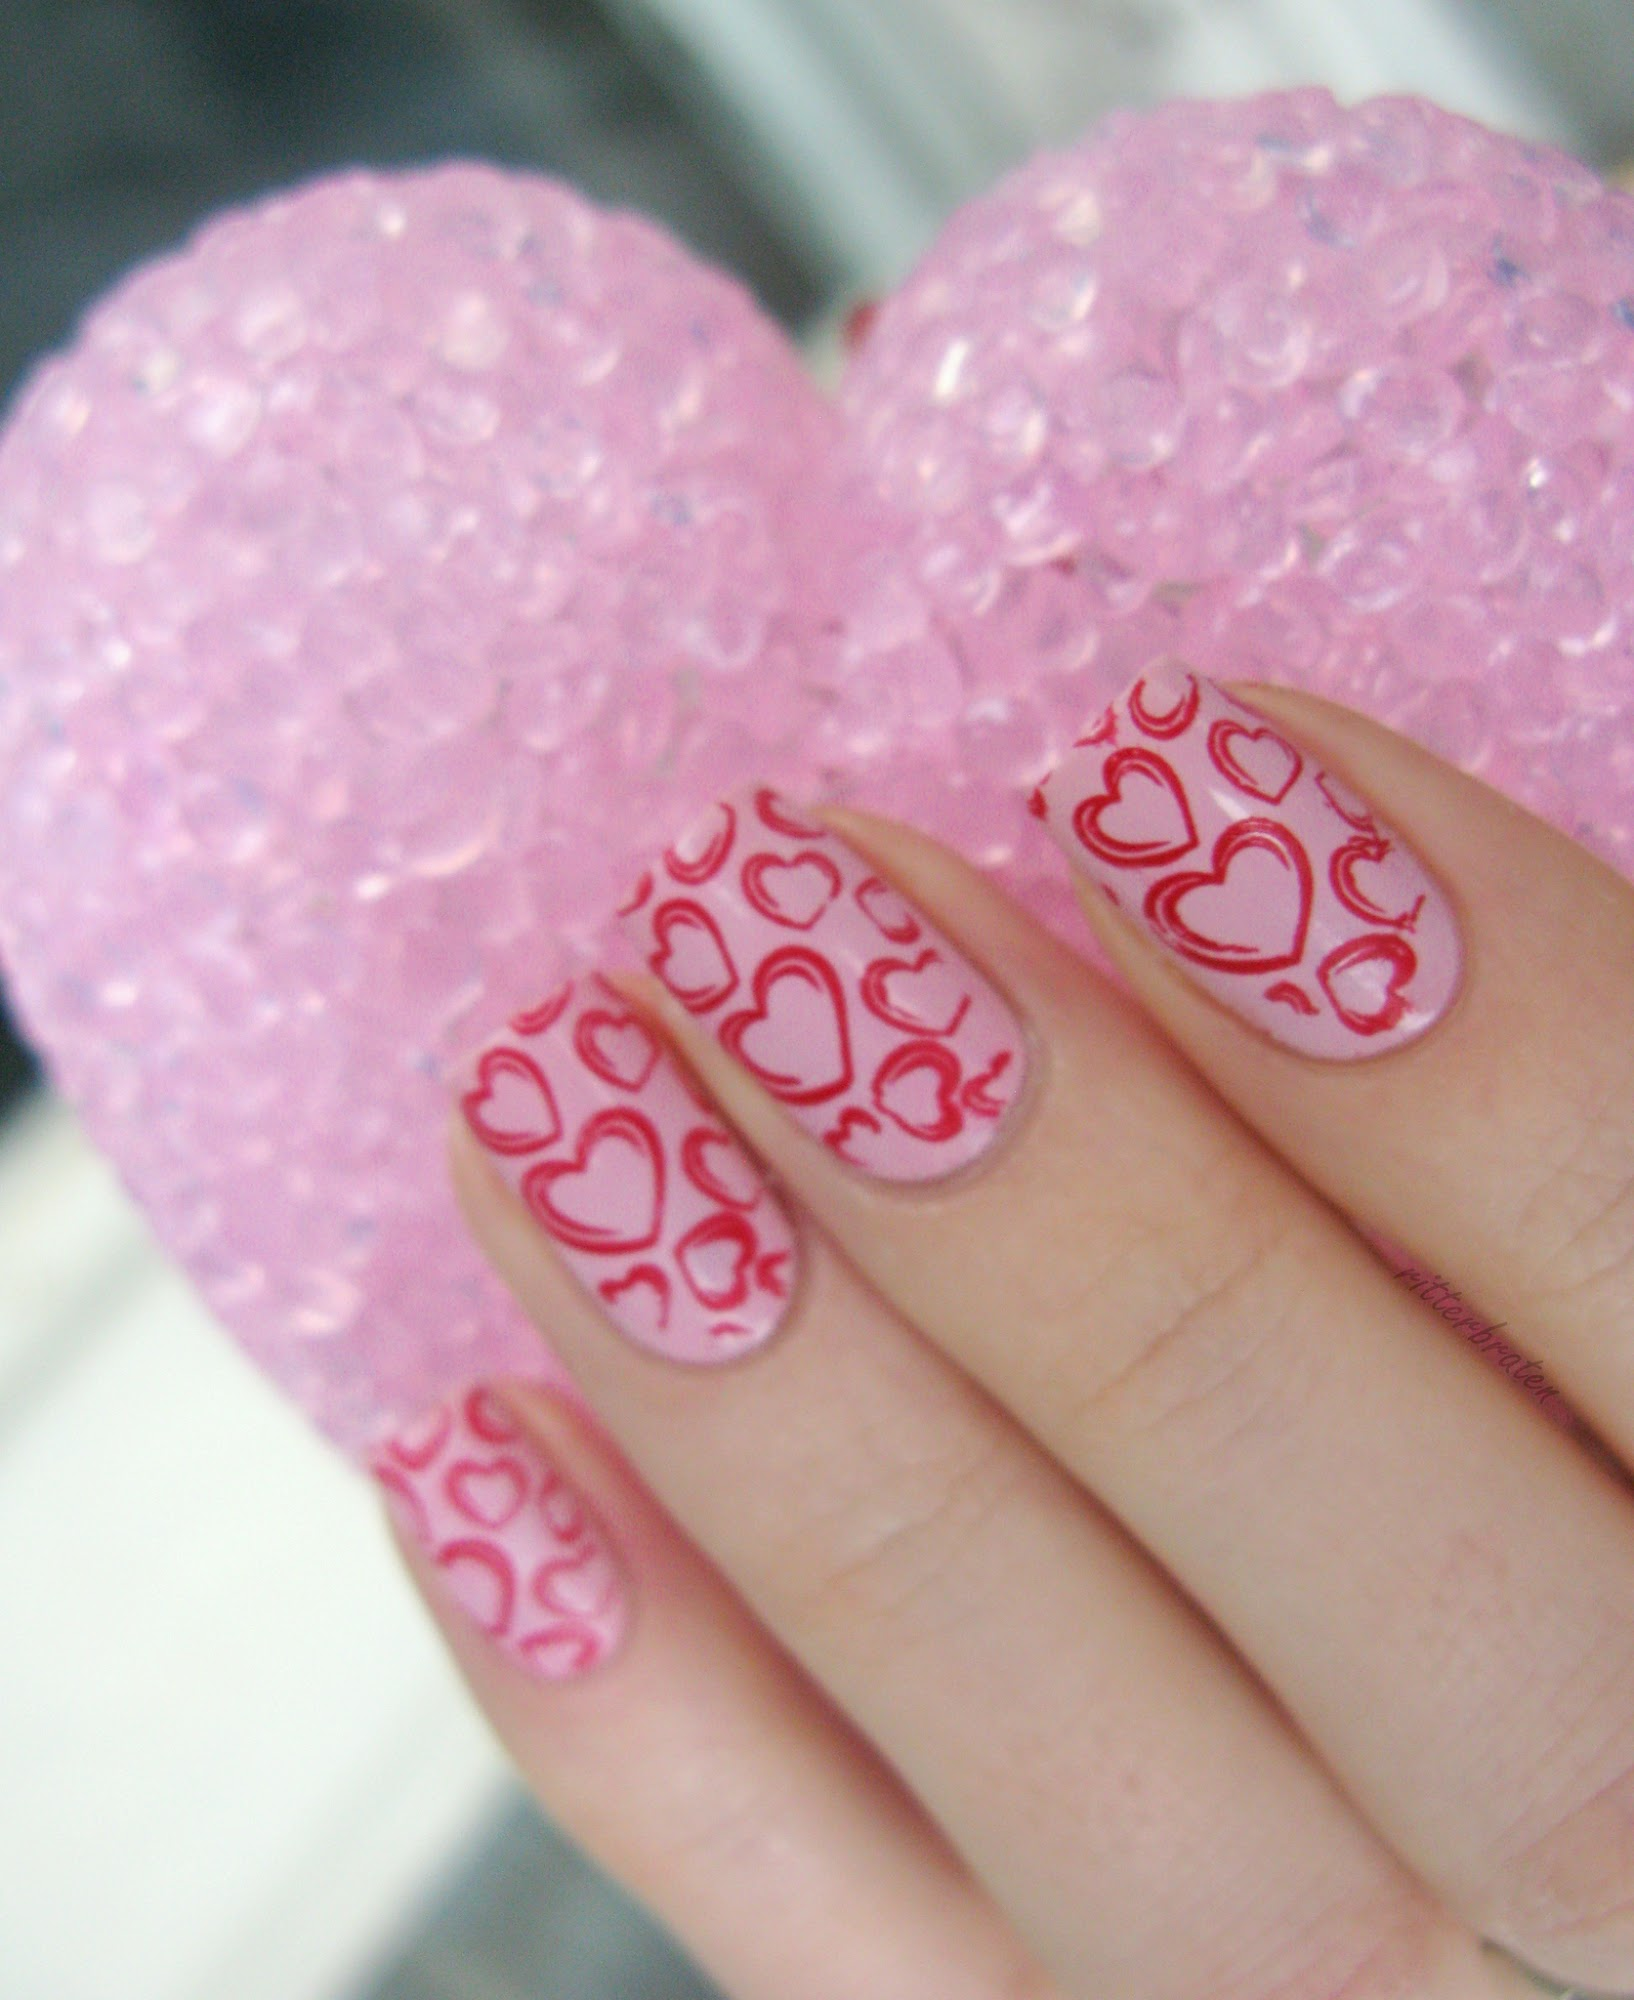 St Valentines day nails